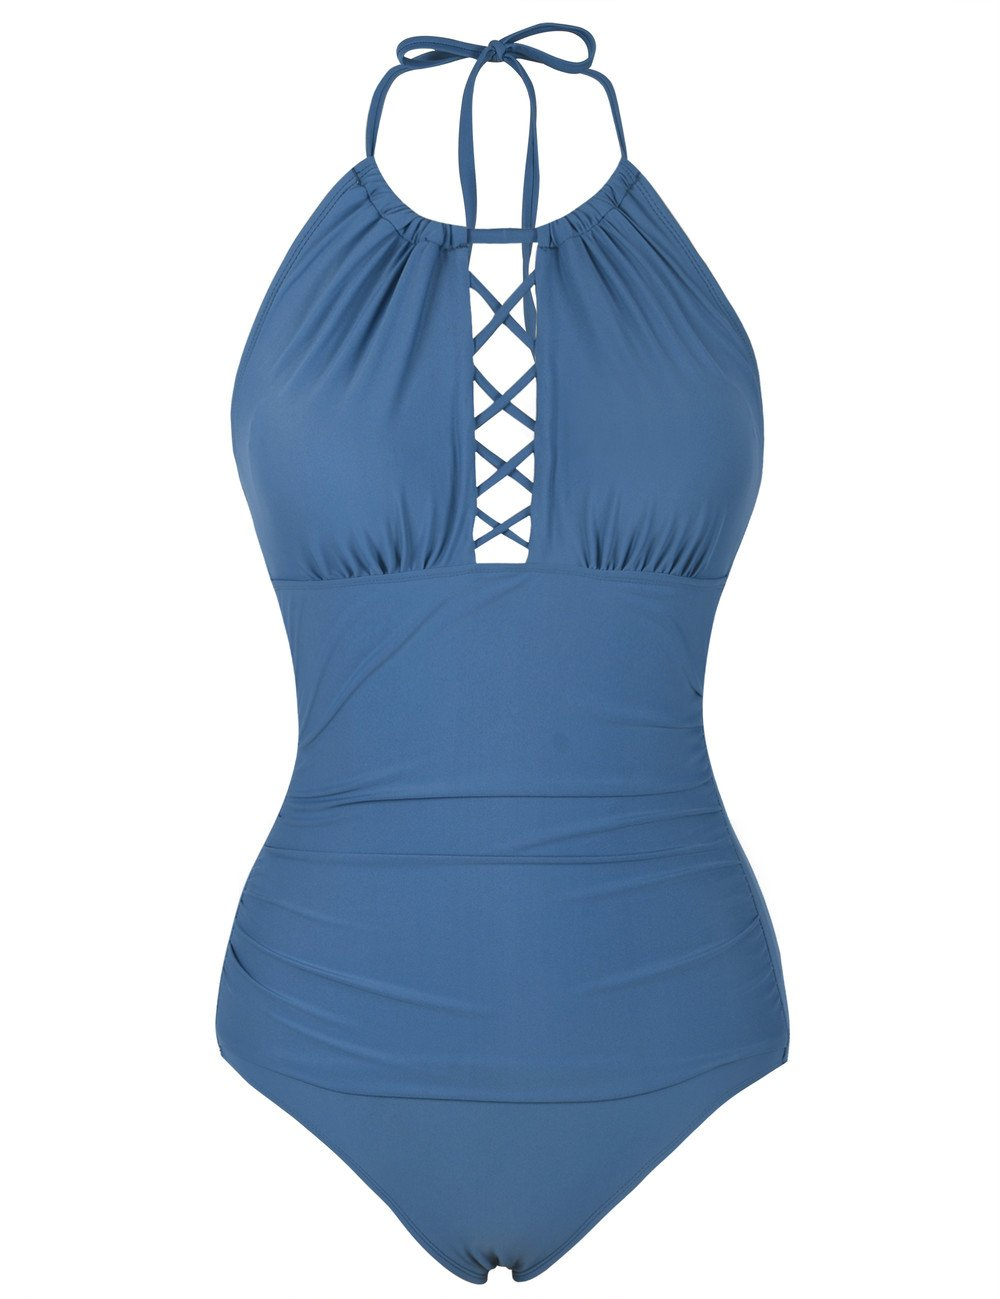 e5dd36d6131 Firpearl Women's Halter One Piece Swimsuits High Neck Cutout Ruched  Swimwears product image